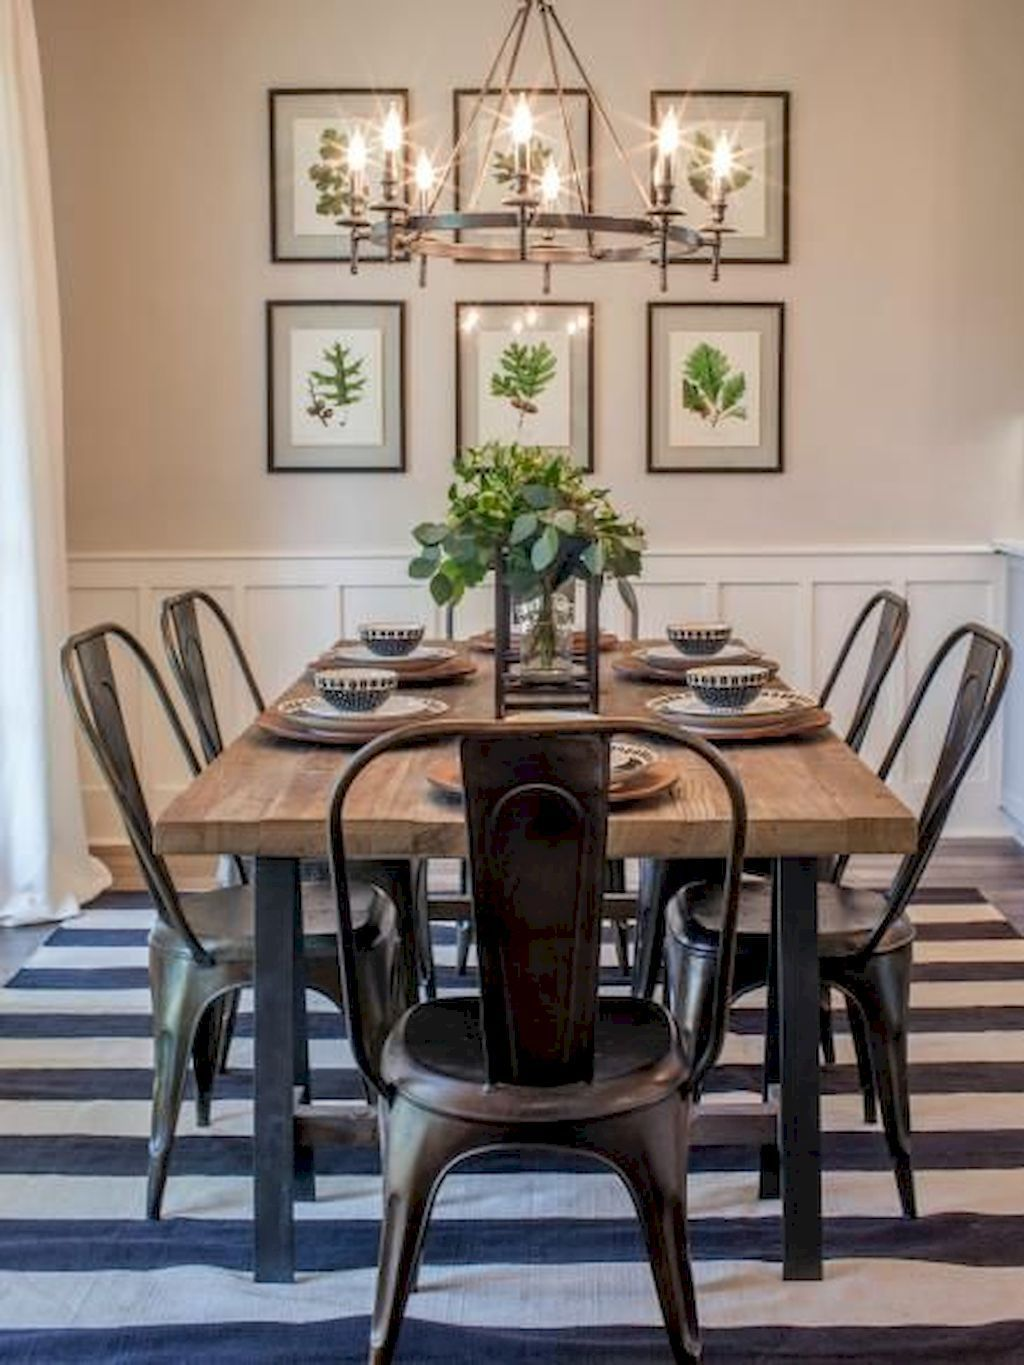 rustic metal kitchen chairs hideaway sleeper chair farmhouse dining room table ideas 15 home